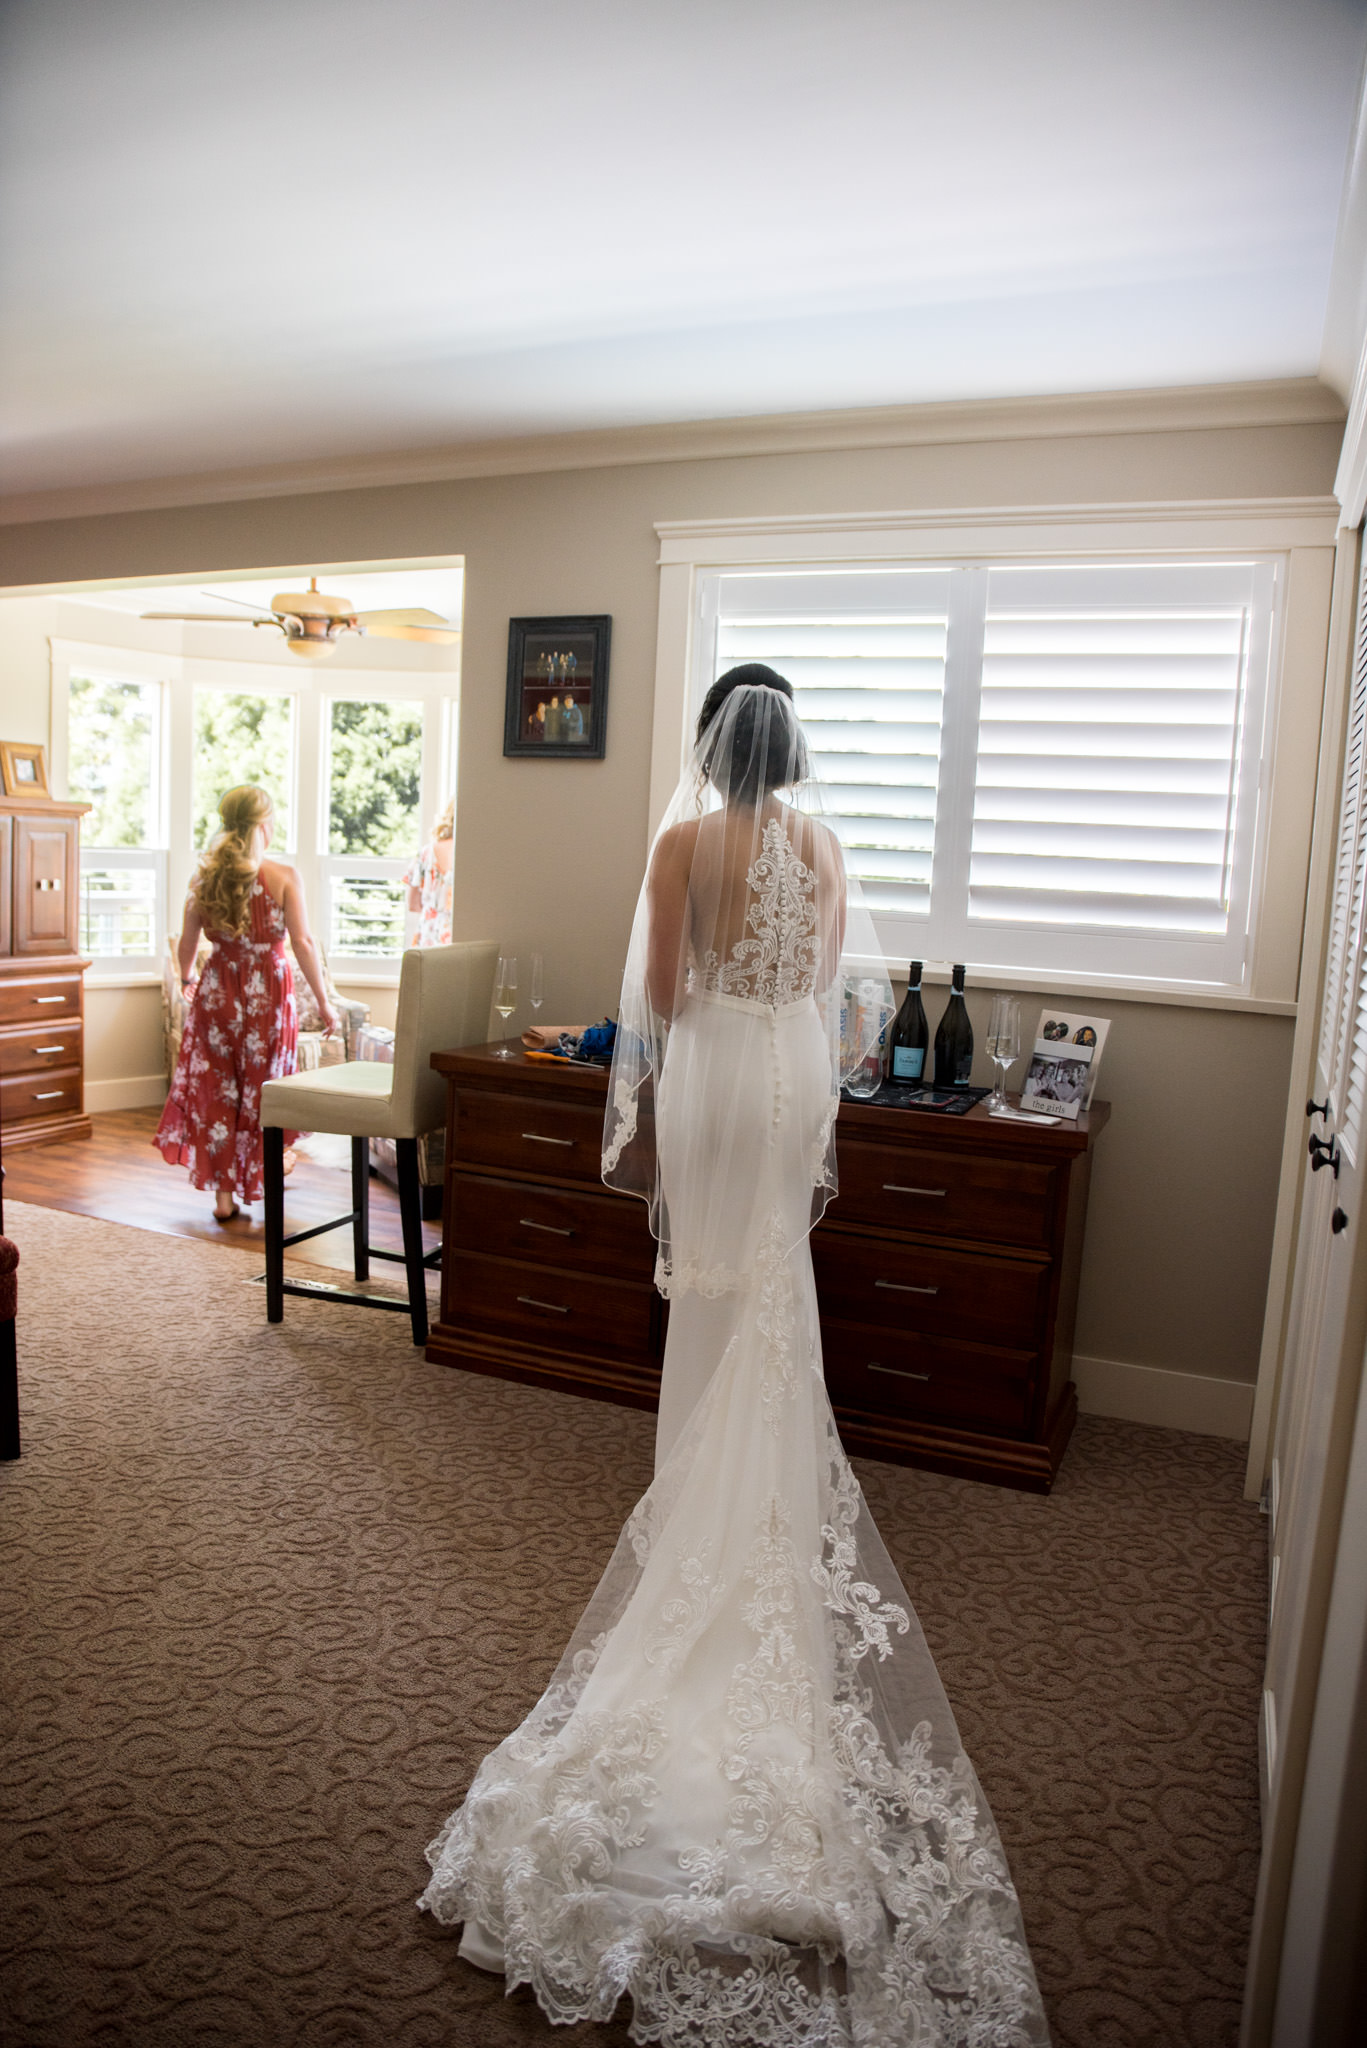 Bride getting ready in a house in BC, Canada